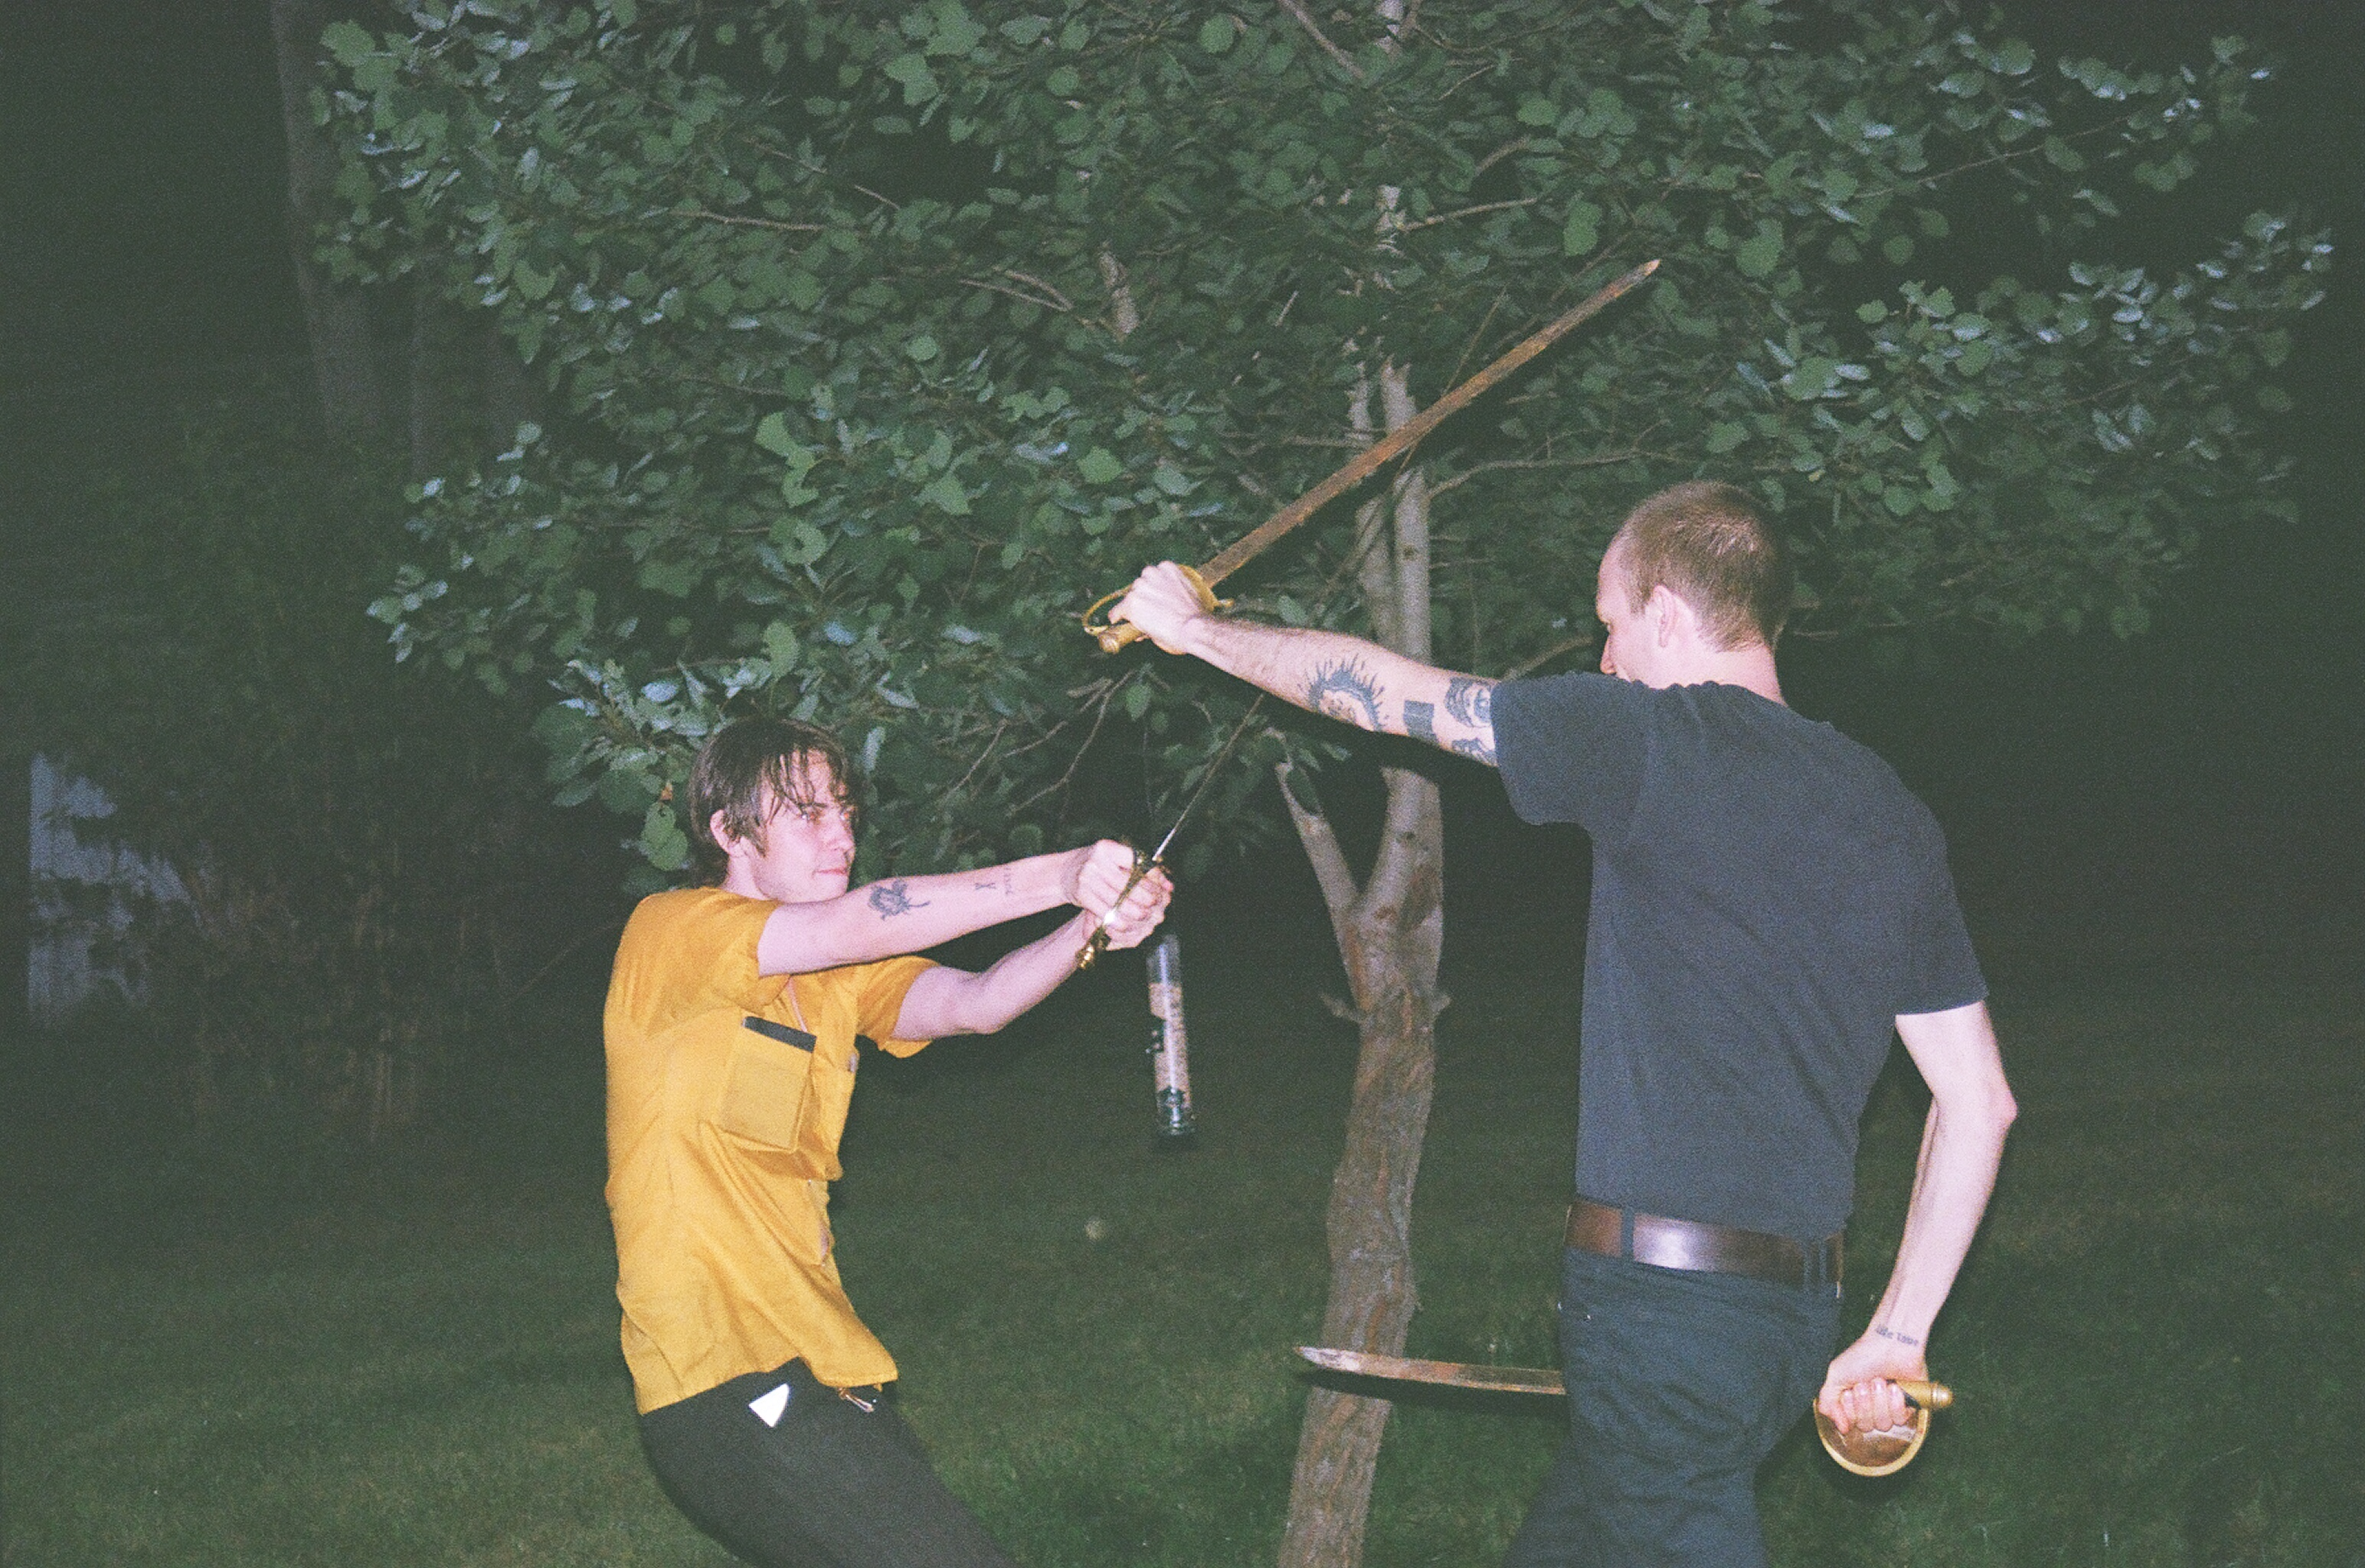 Elias Ronnenfelt and Dan Sword Fighting, upstate New York.